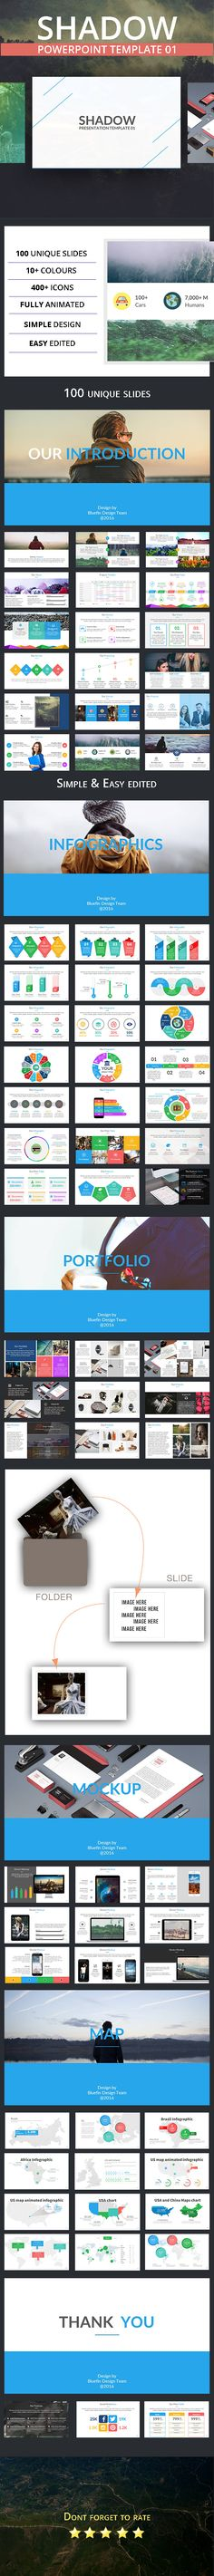 Shadow 01 - Powerpoint Template. Download here: http://graphicriver.net/item/shadow-01-powerpoint-template/16496585?ref=ksioks